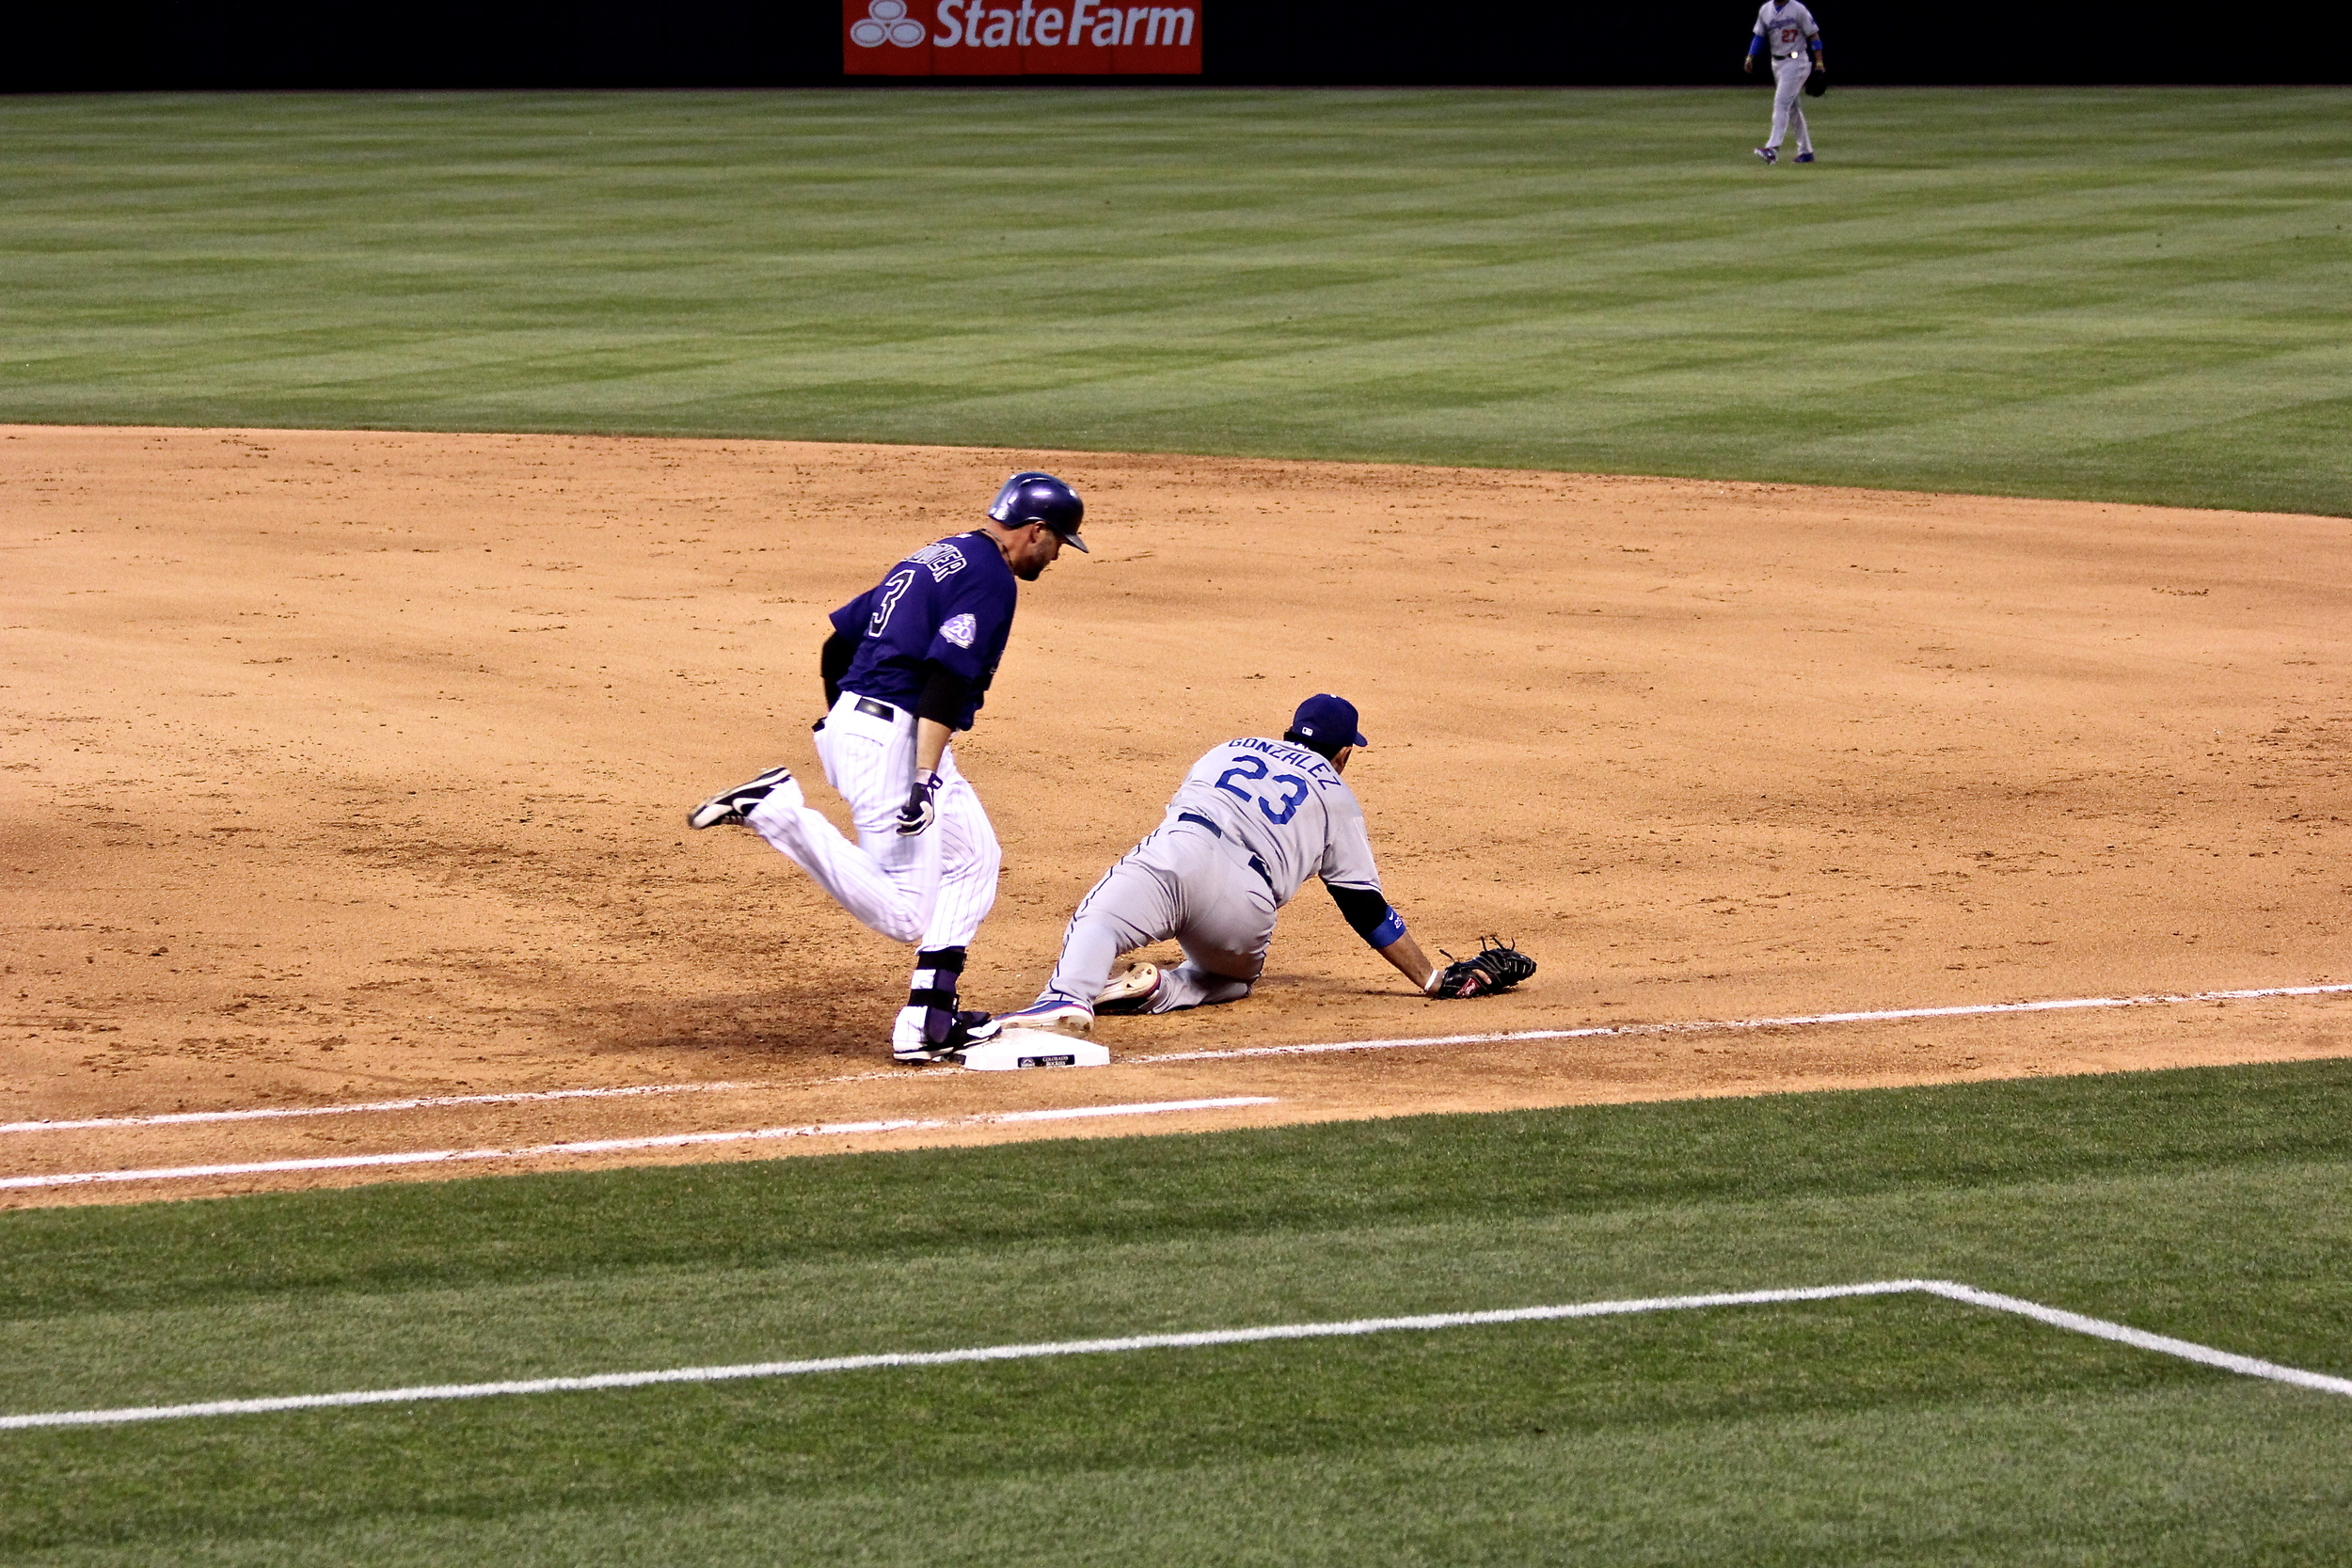 Michael Cuddyer out at first